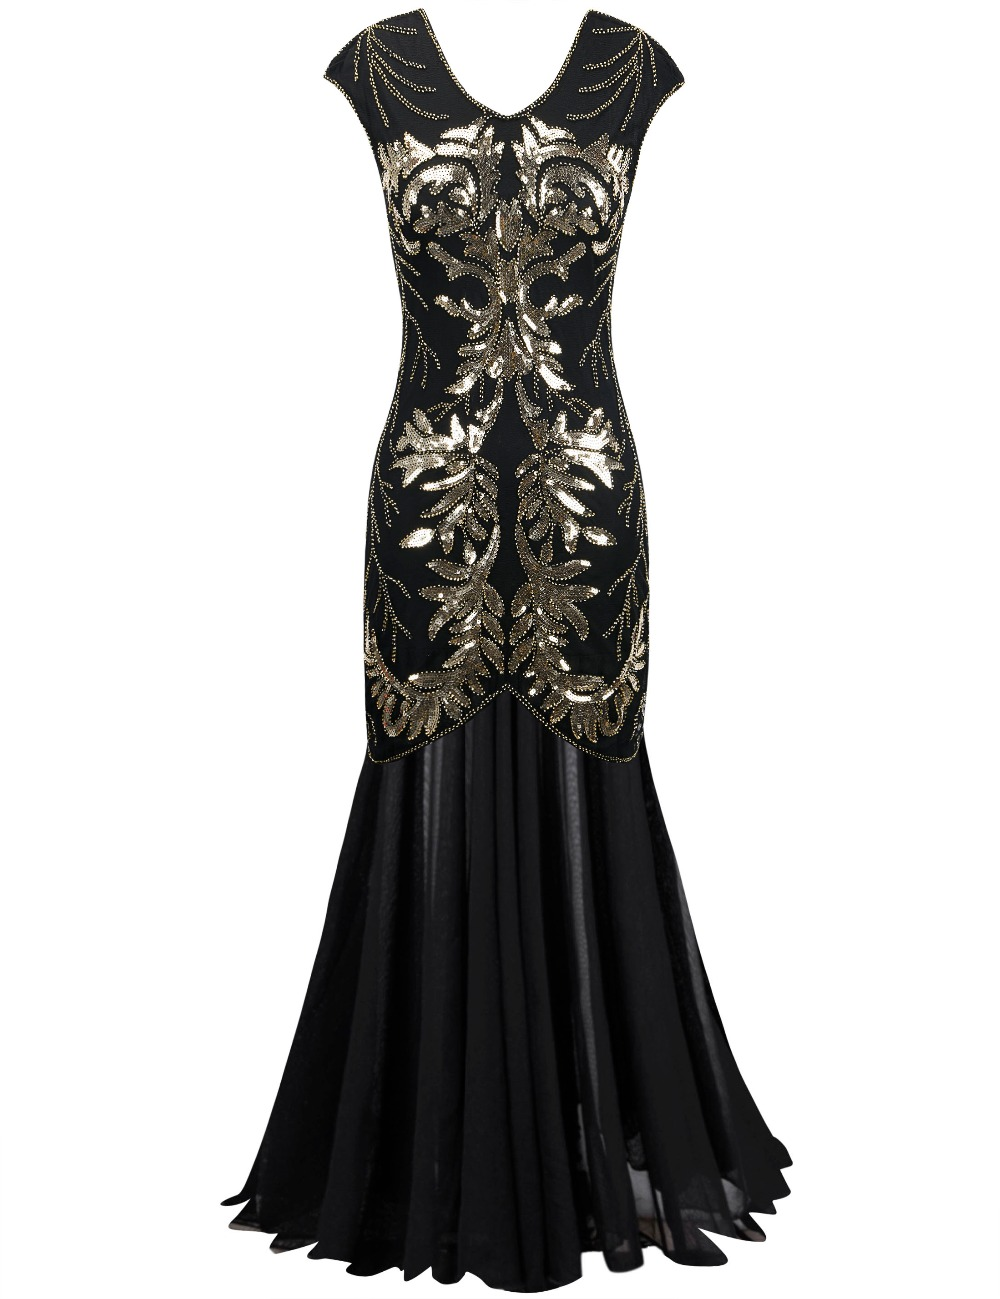 Excellent Great Gatsby Outfits Female | Tenuestyle | Great Gatsby Vintage Fashion Outfits Back Into Trendy ...